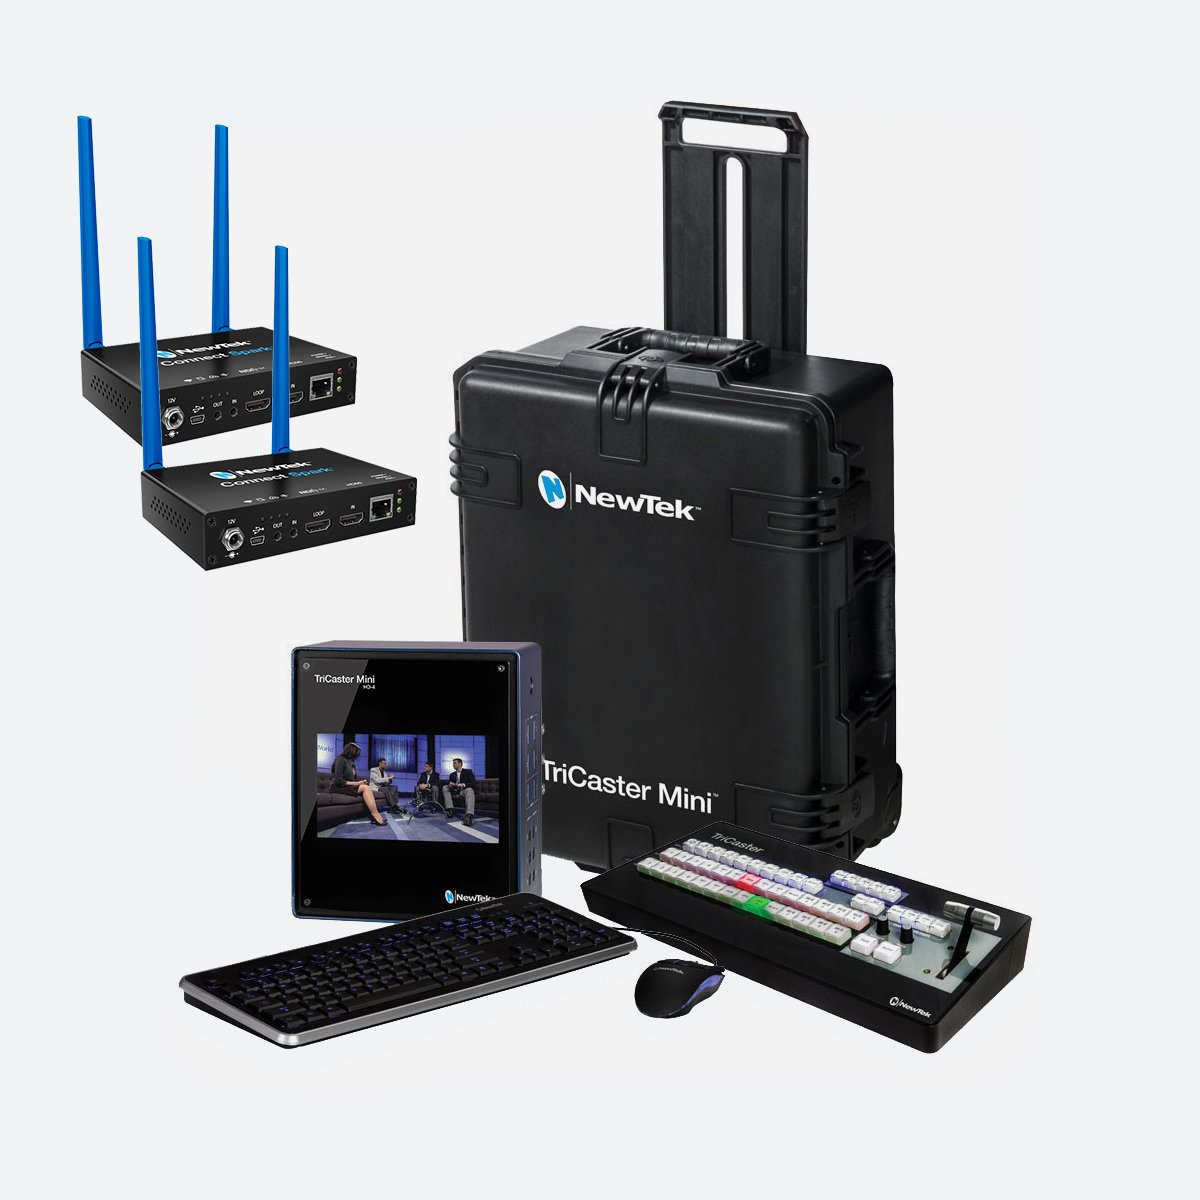 NewTek TriCaster Mini HD-4i HDMI Bundle Spark HDMI